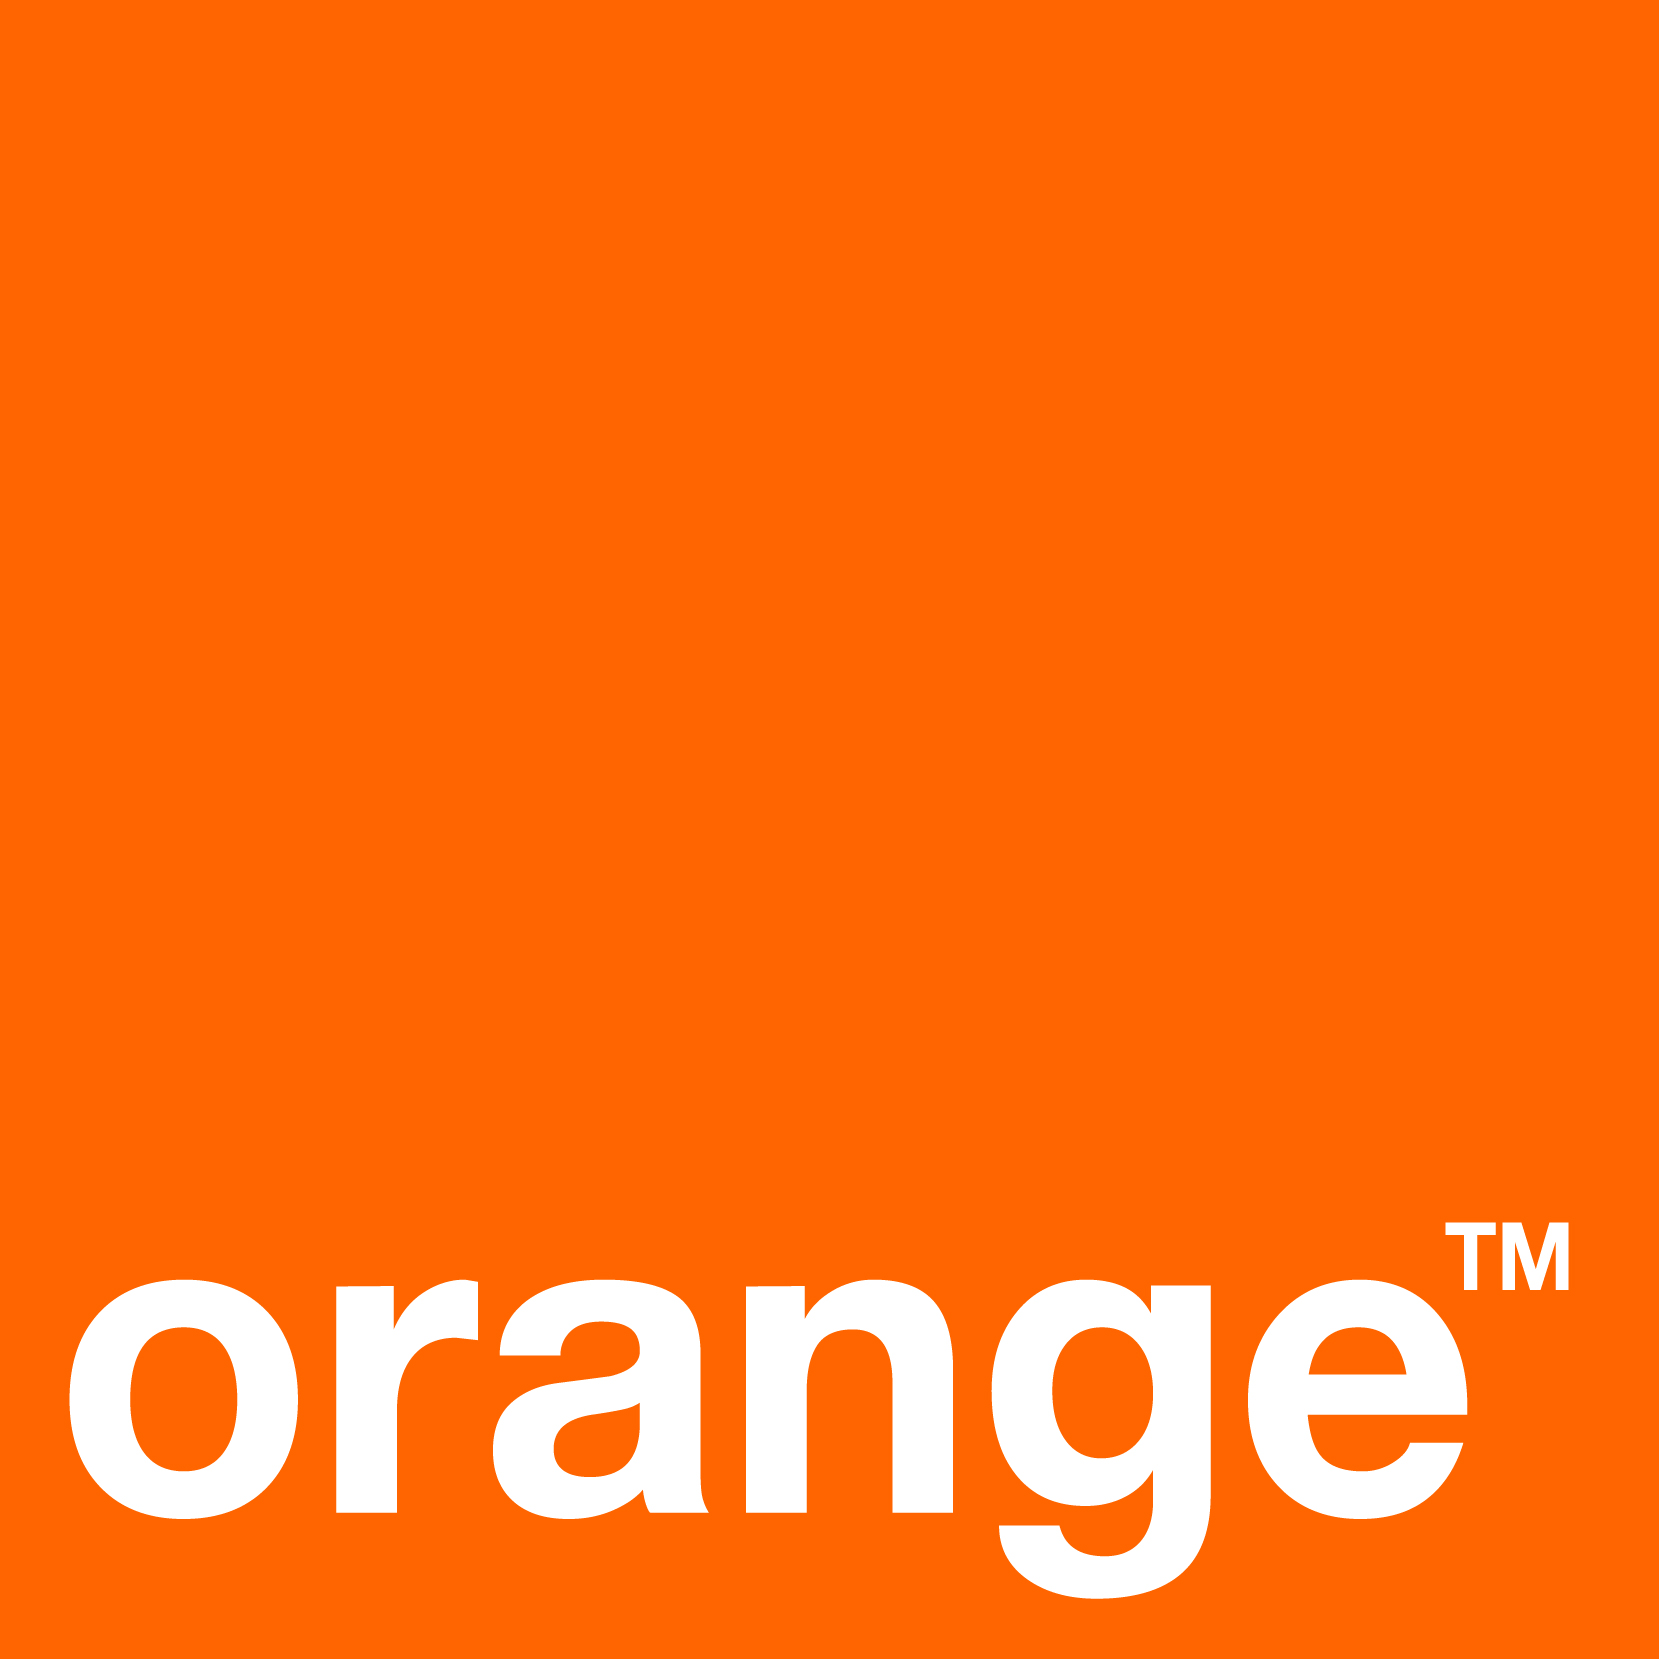 Ivory Coast | Prepaid Data SIM Card Wiki | FANDOM powered by Wikia